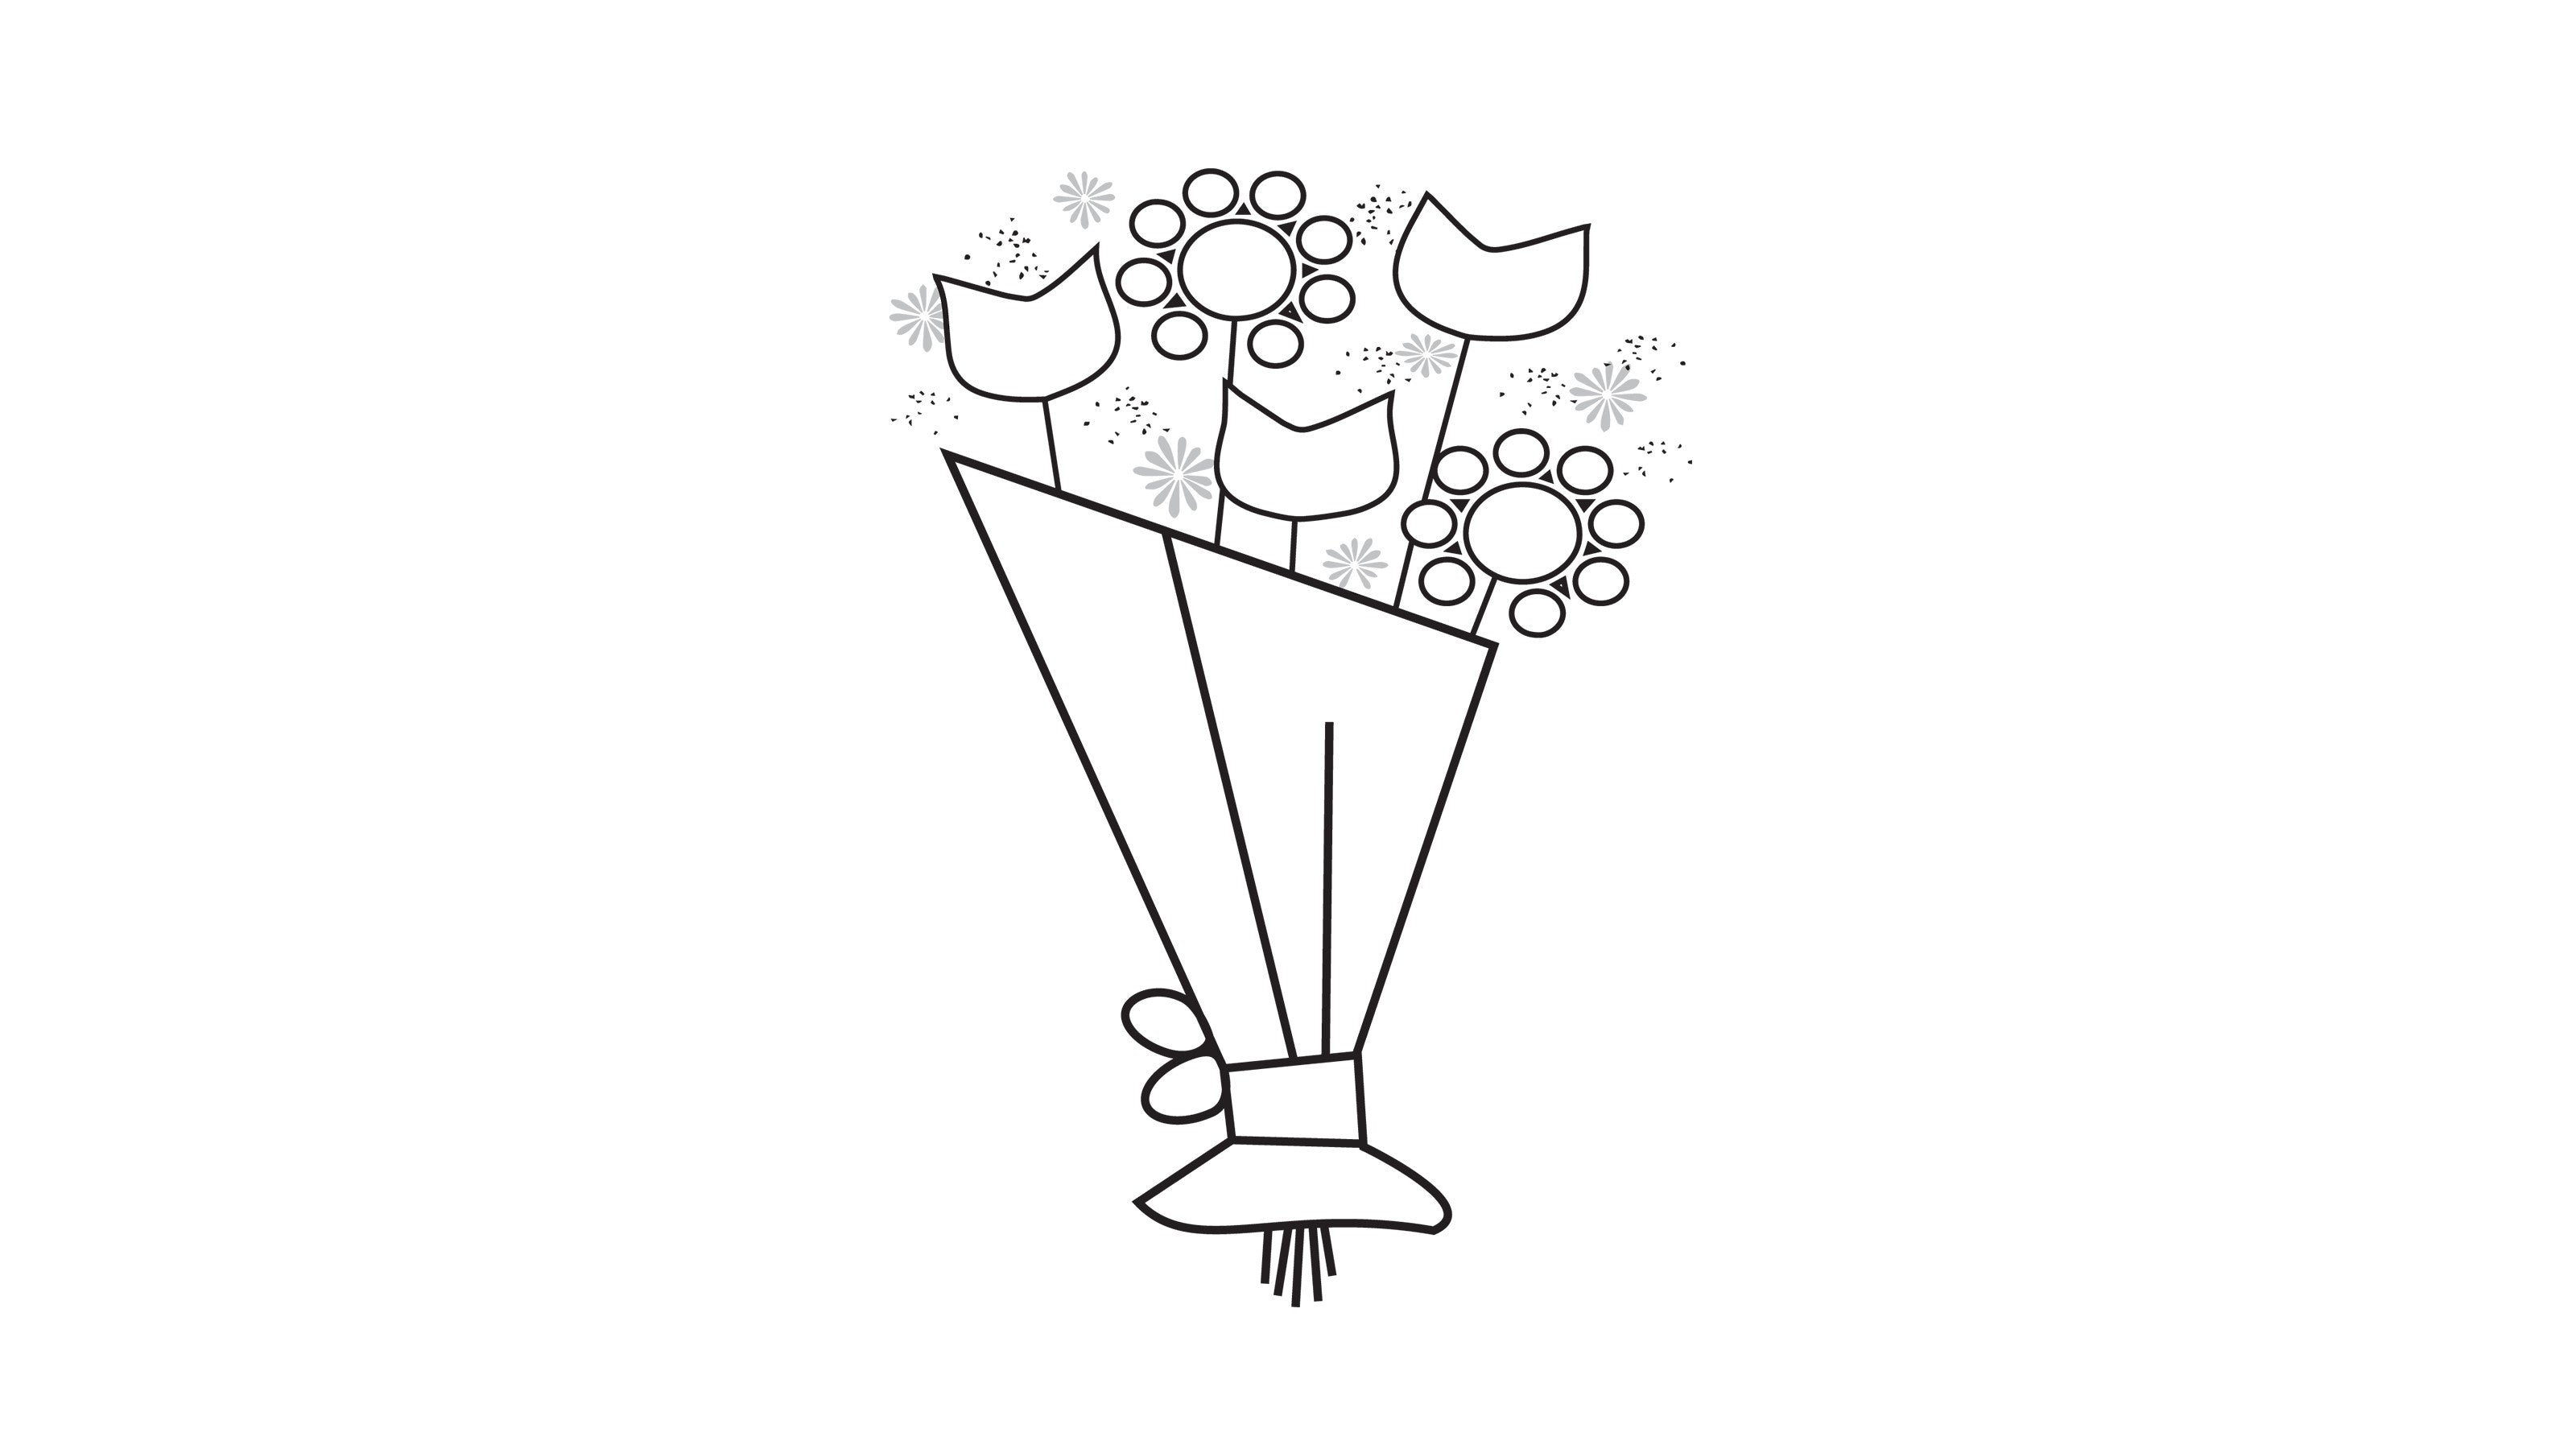 Sweet Baby Boy™ Bouquet by Hallmark - Image 2 Of 2